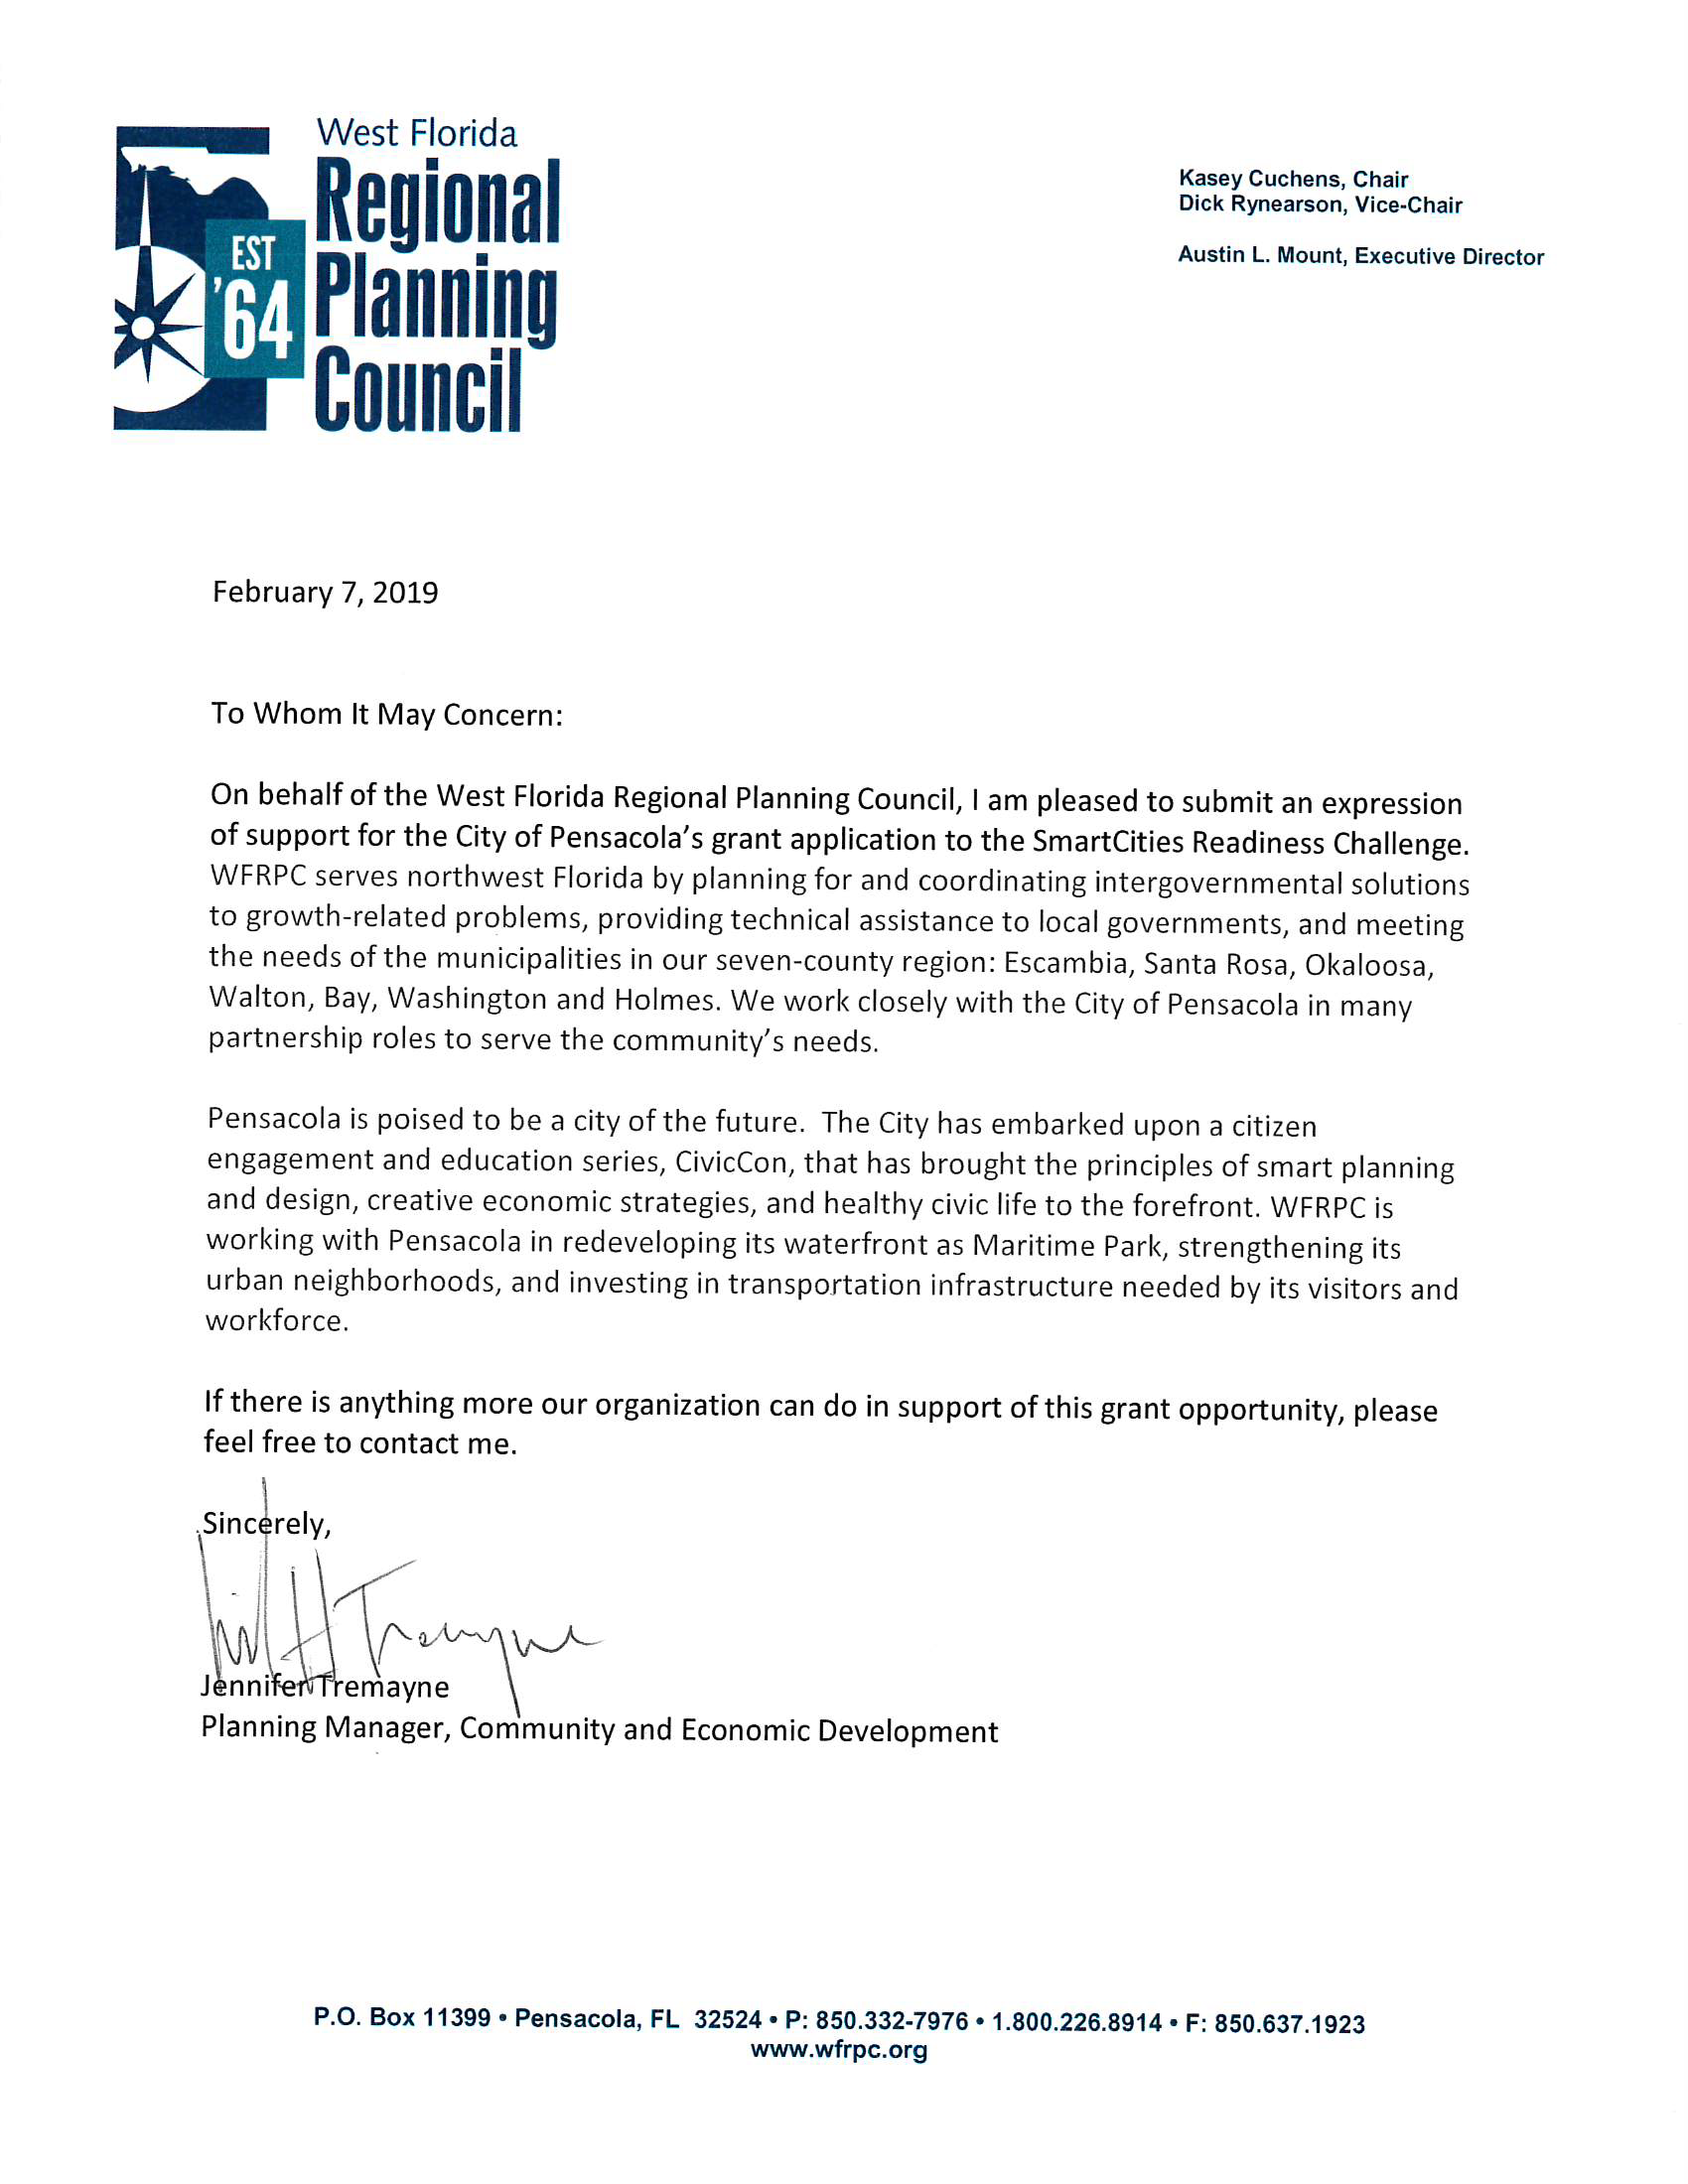 West Florida Regional Planning Council